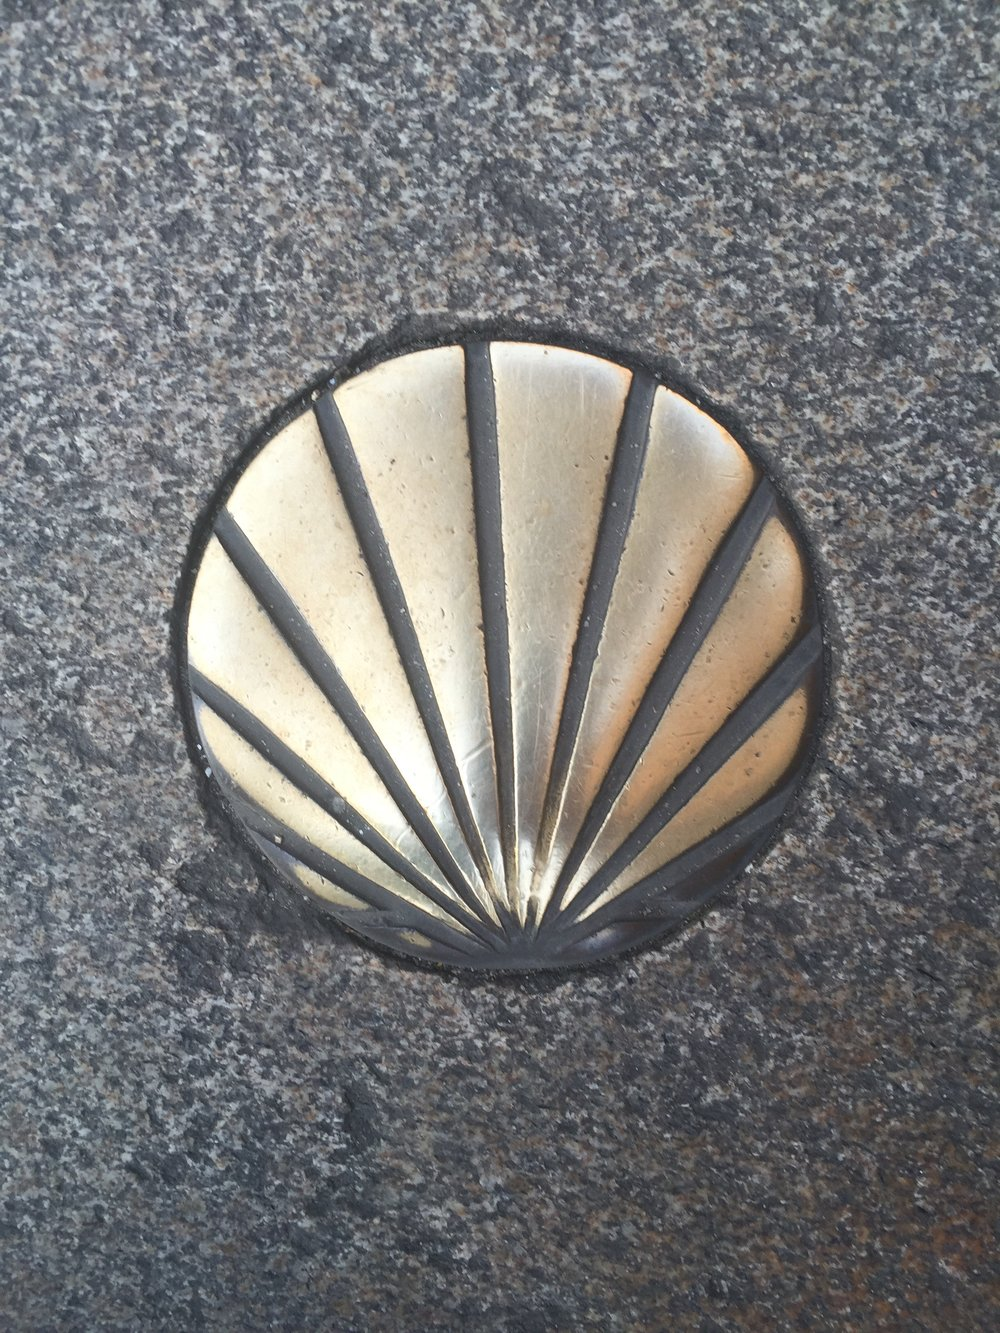 Scallop shell lining the square